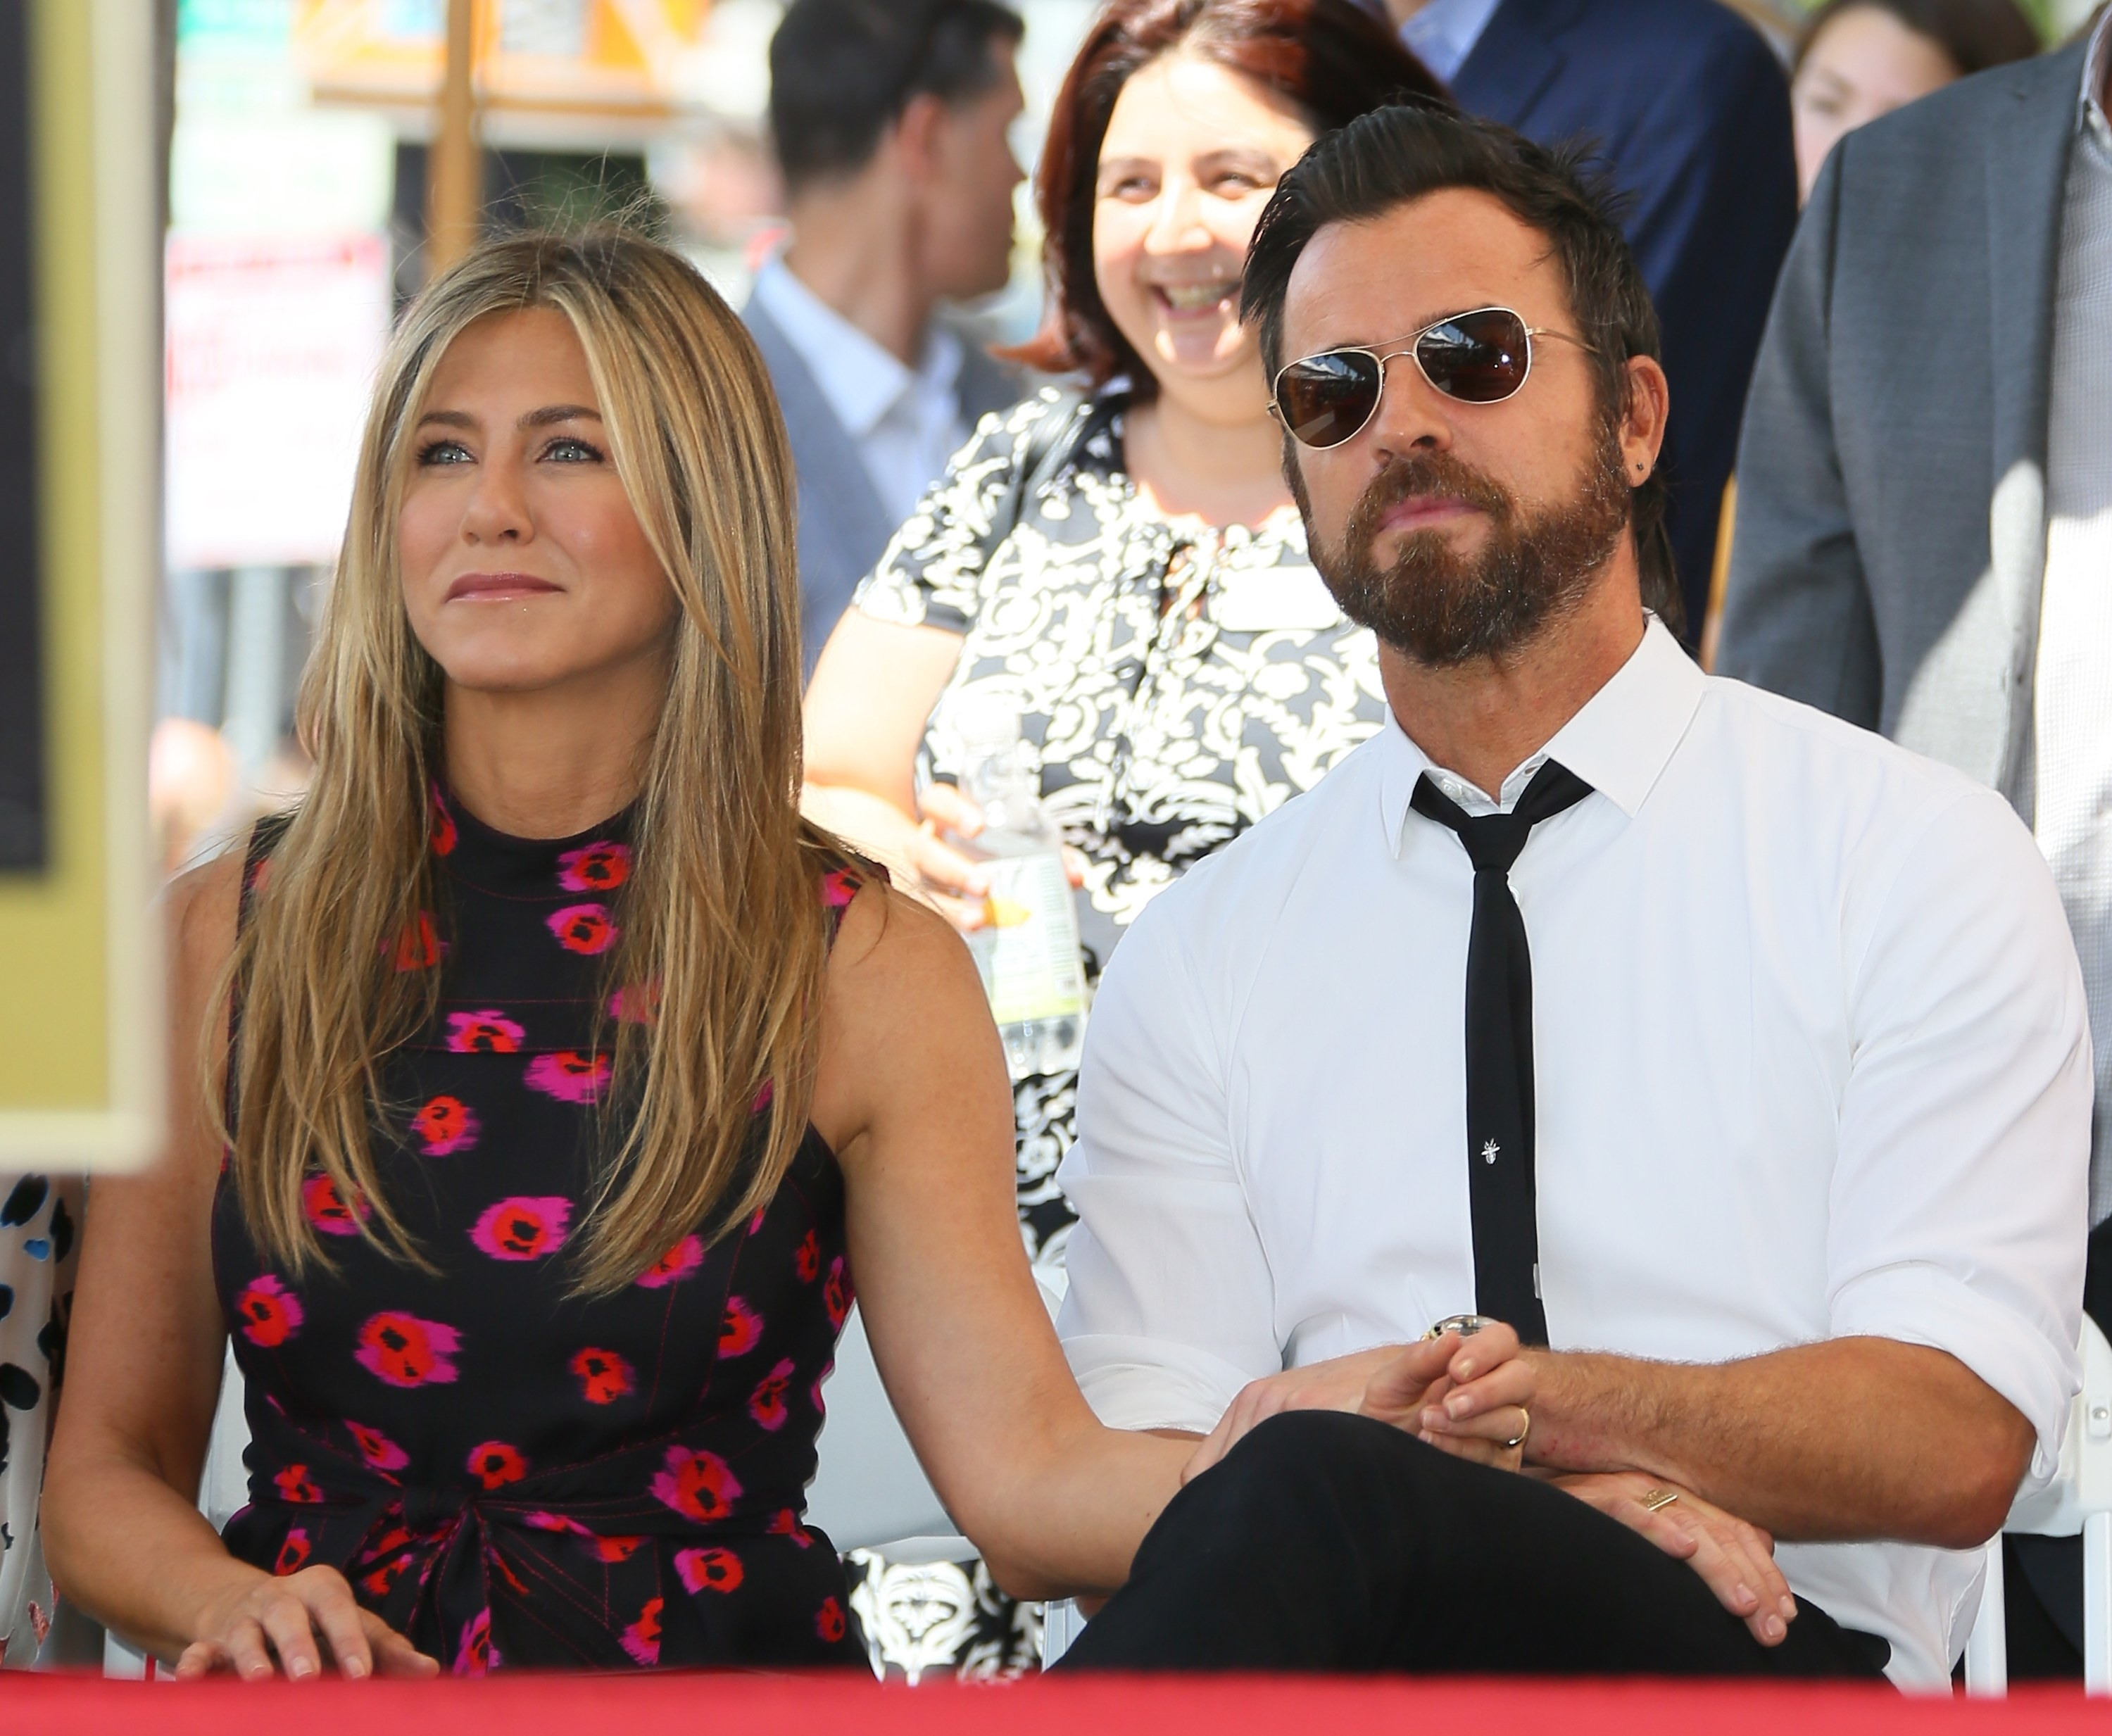 Aniston and Theroux at Jason Bateman's Walk of Fame ceremony